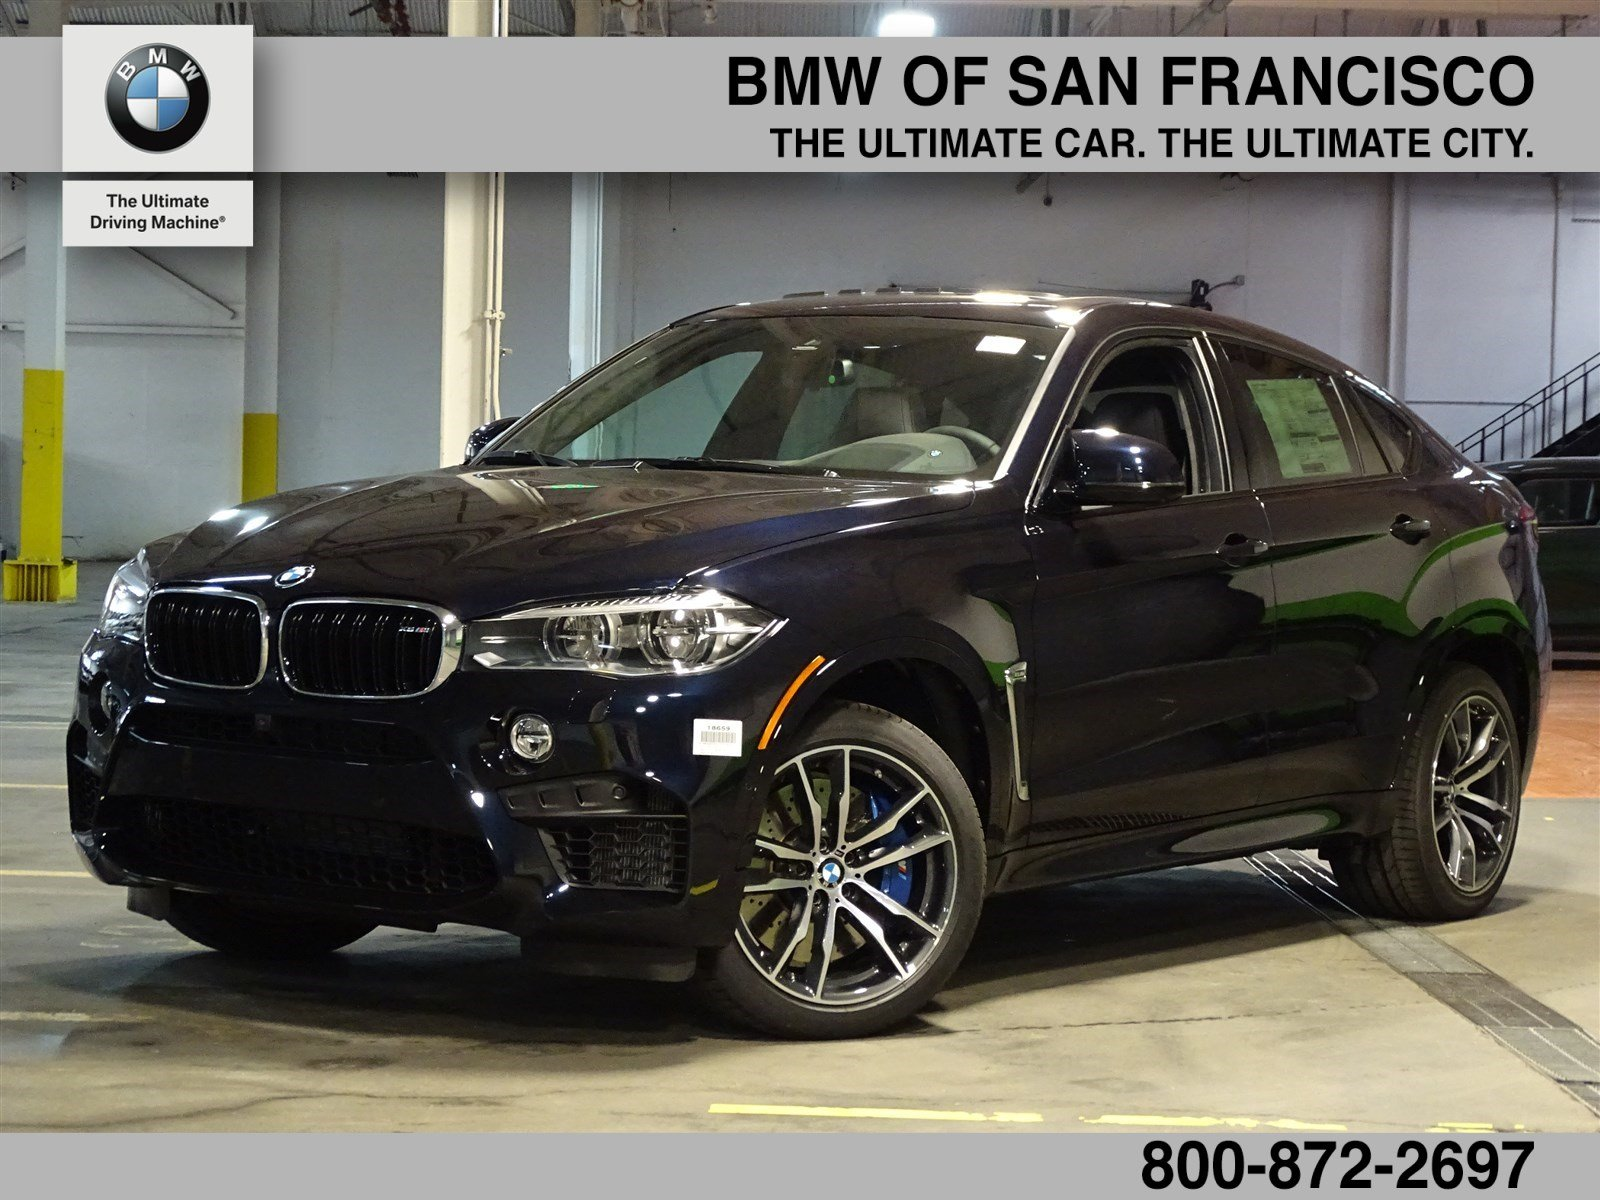 Bmw X3 2018 Pricing >> New 2018 BMW X6 M Base Sport Utility in San Francisco #18659 | BMW of San Francisco